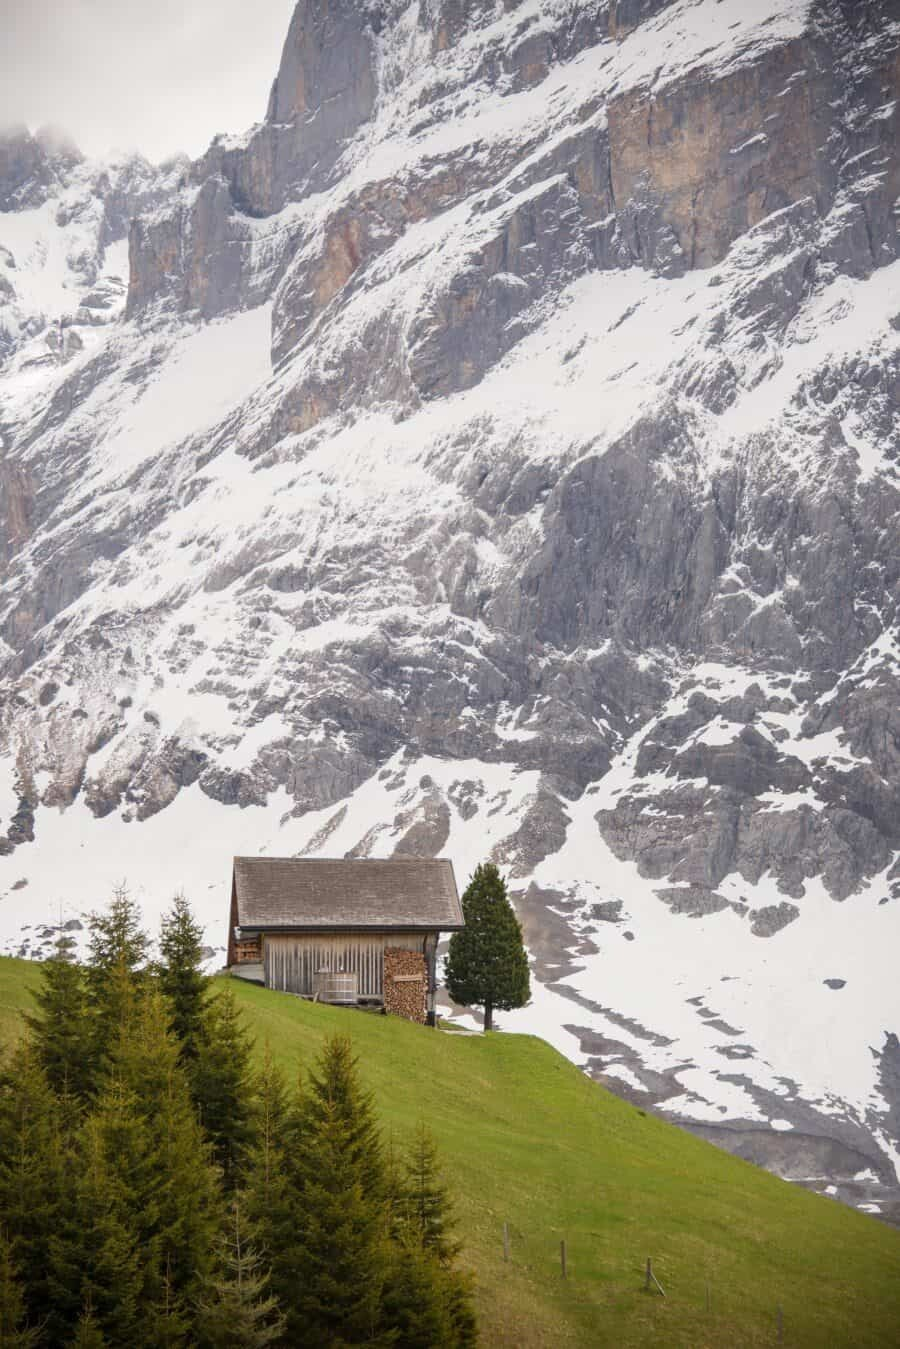 jungfrau-travel-guide-wengen-lauterbrunnen-and-grindelwald-by-the-wandering-lens-32